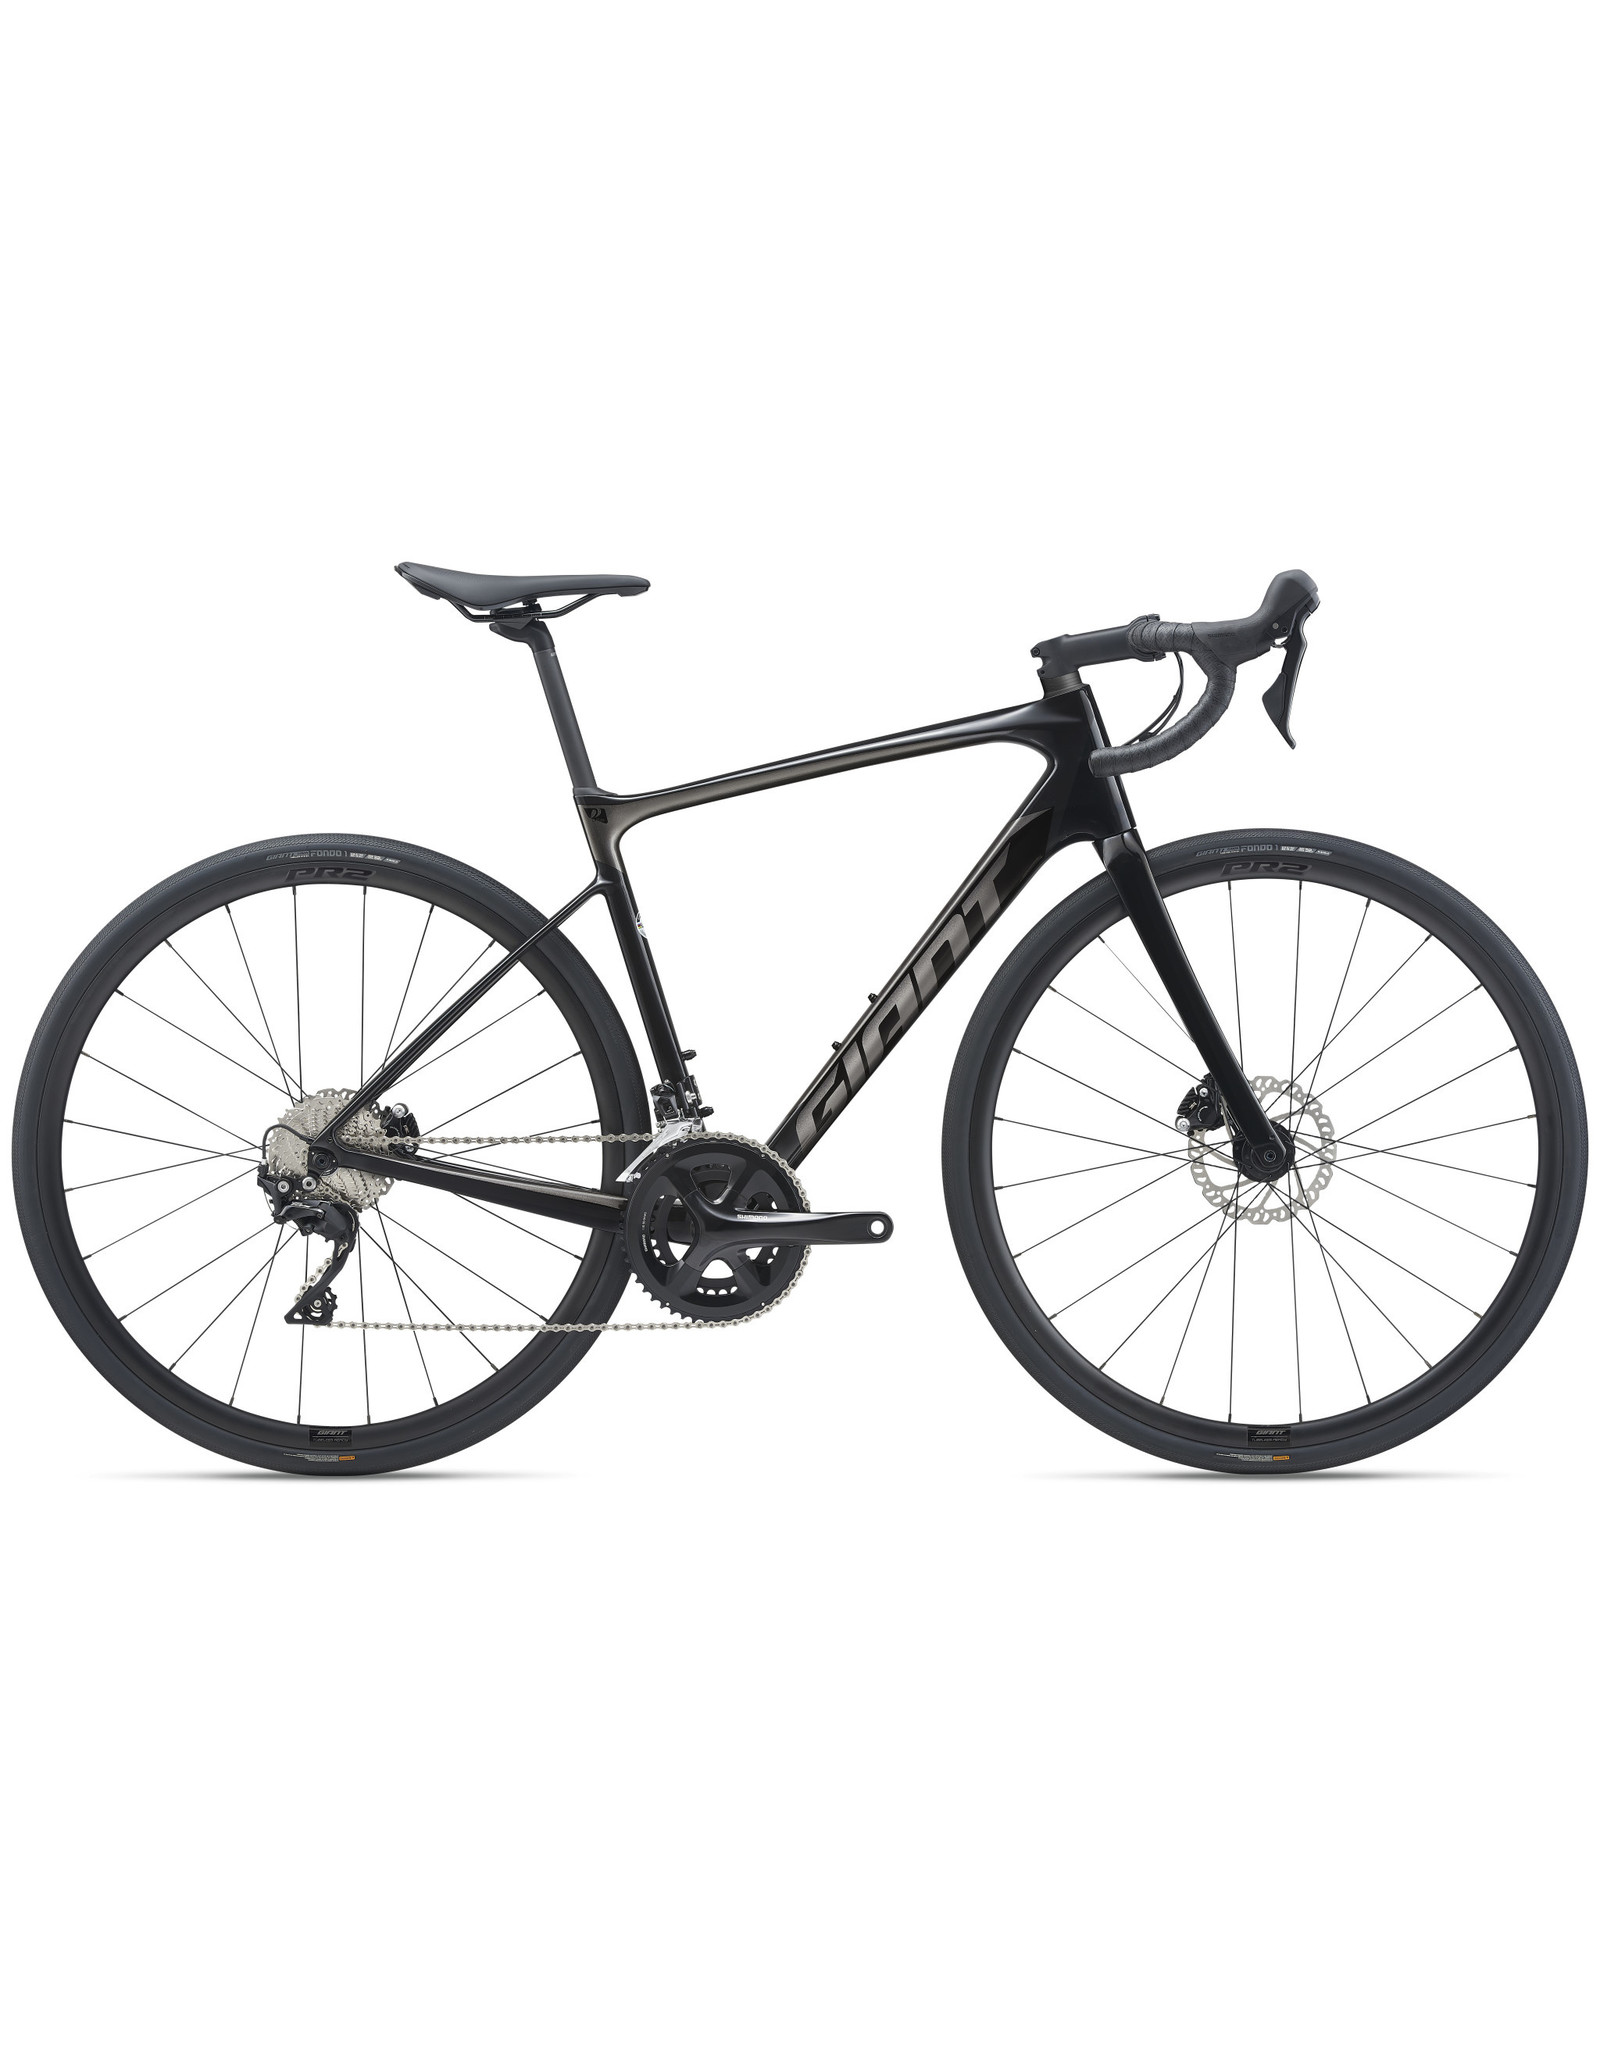 GIANT Giant Defy Advanced 2 2021 Carbon